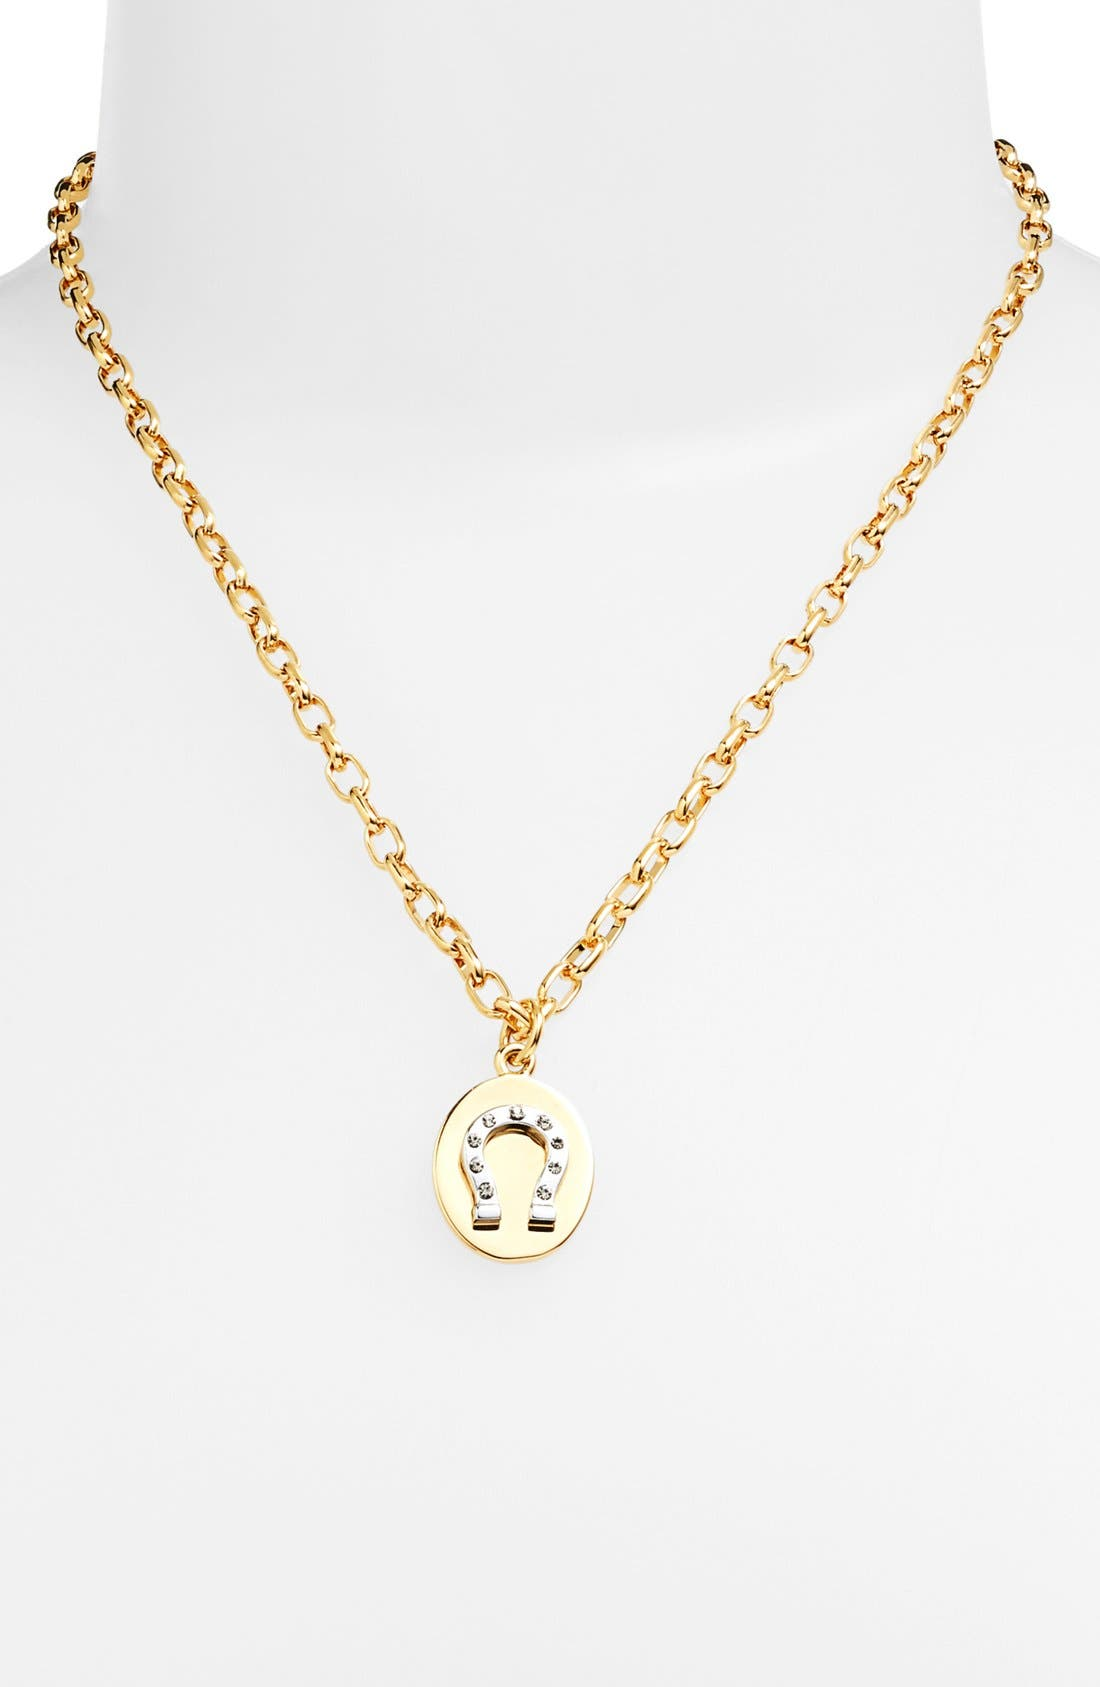 Main Image - Tory Burch 'Sylbie' Horseshoe Charm Necklace